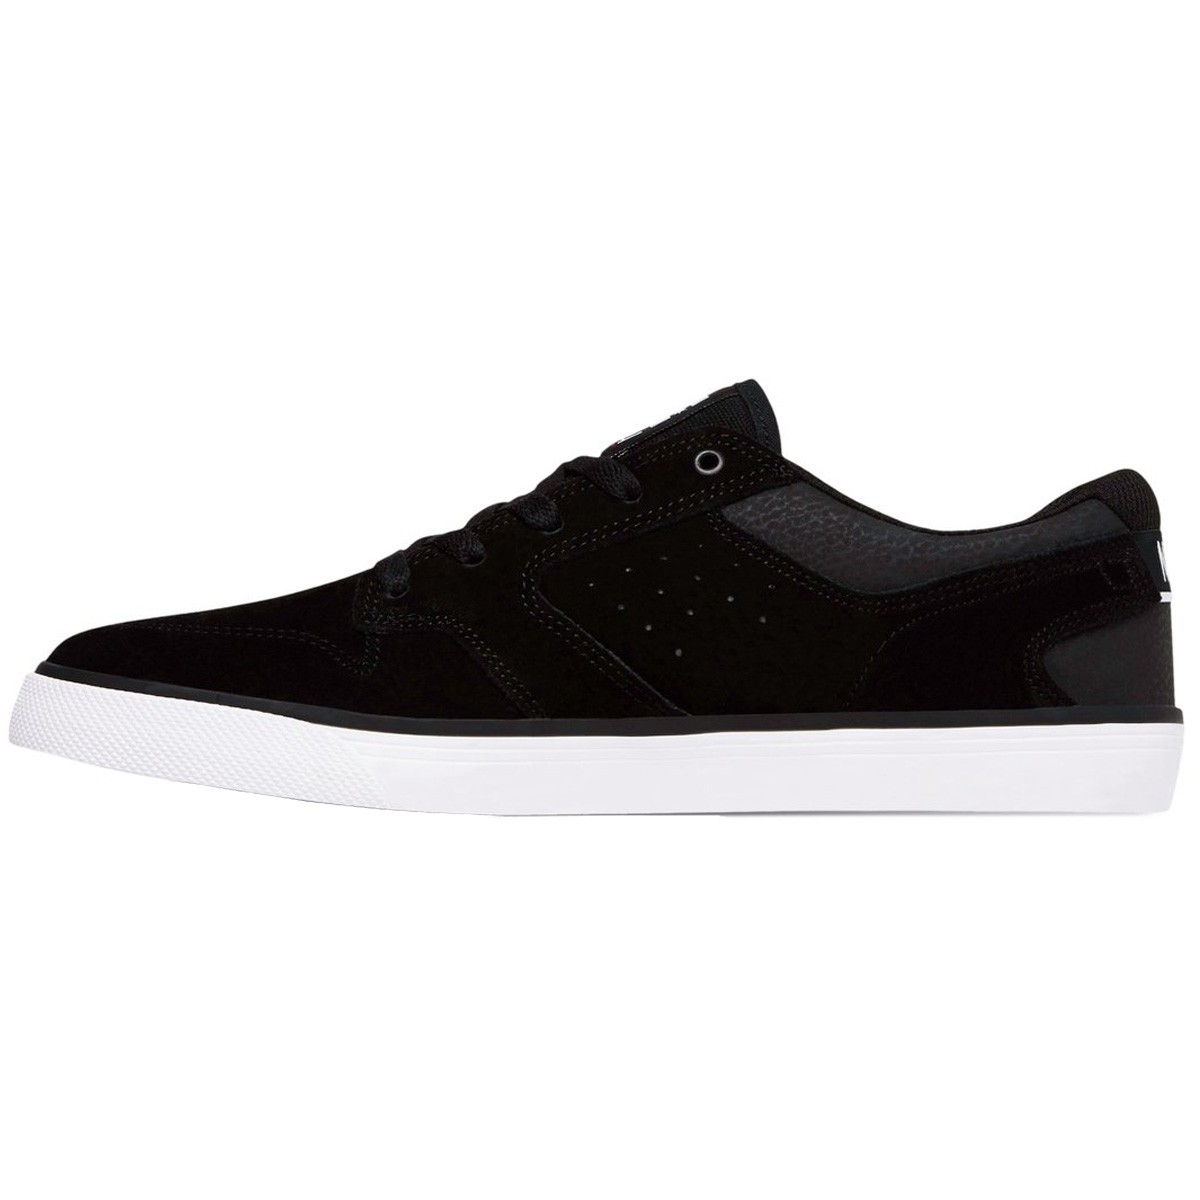 DC Nyjah Vulc Shoes - Black - 8.0 219c1851ef